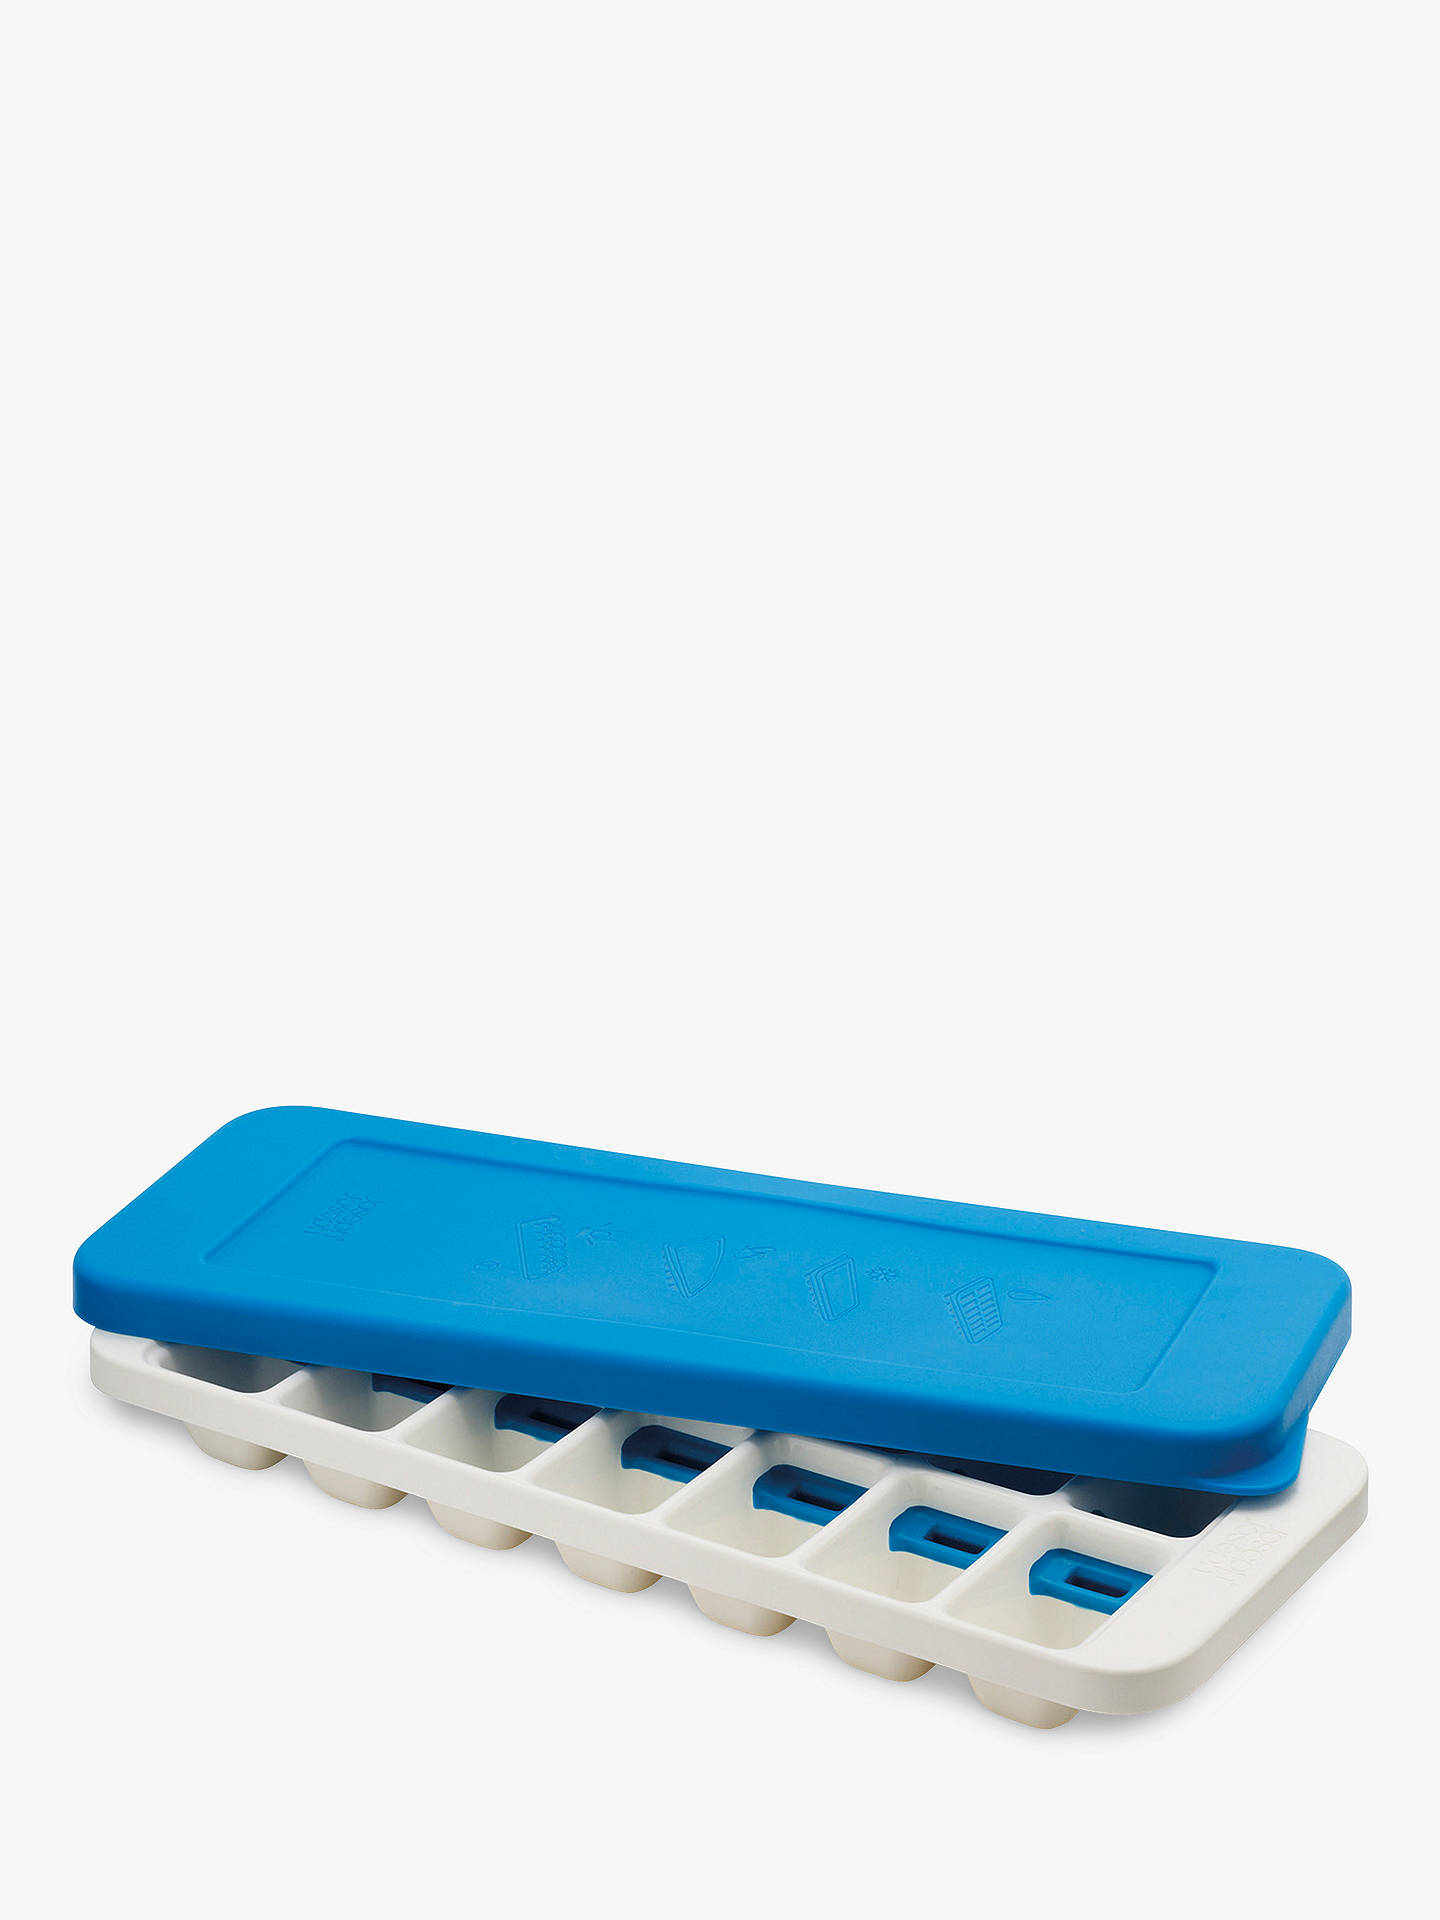 BuyJoseph Joseph Quicksnap Plus Ice Cube Tray, Blue Online at johnlewis.com